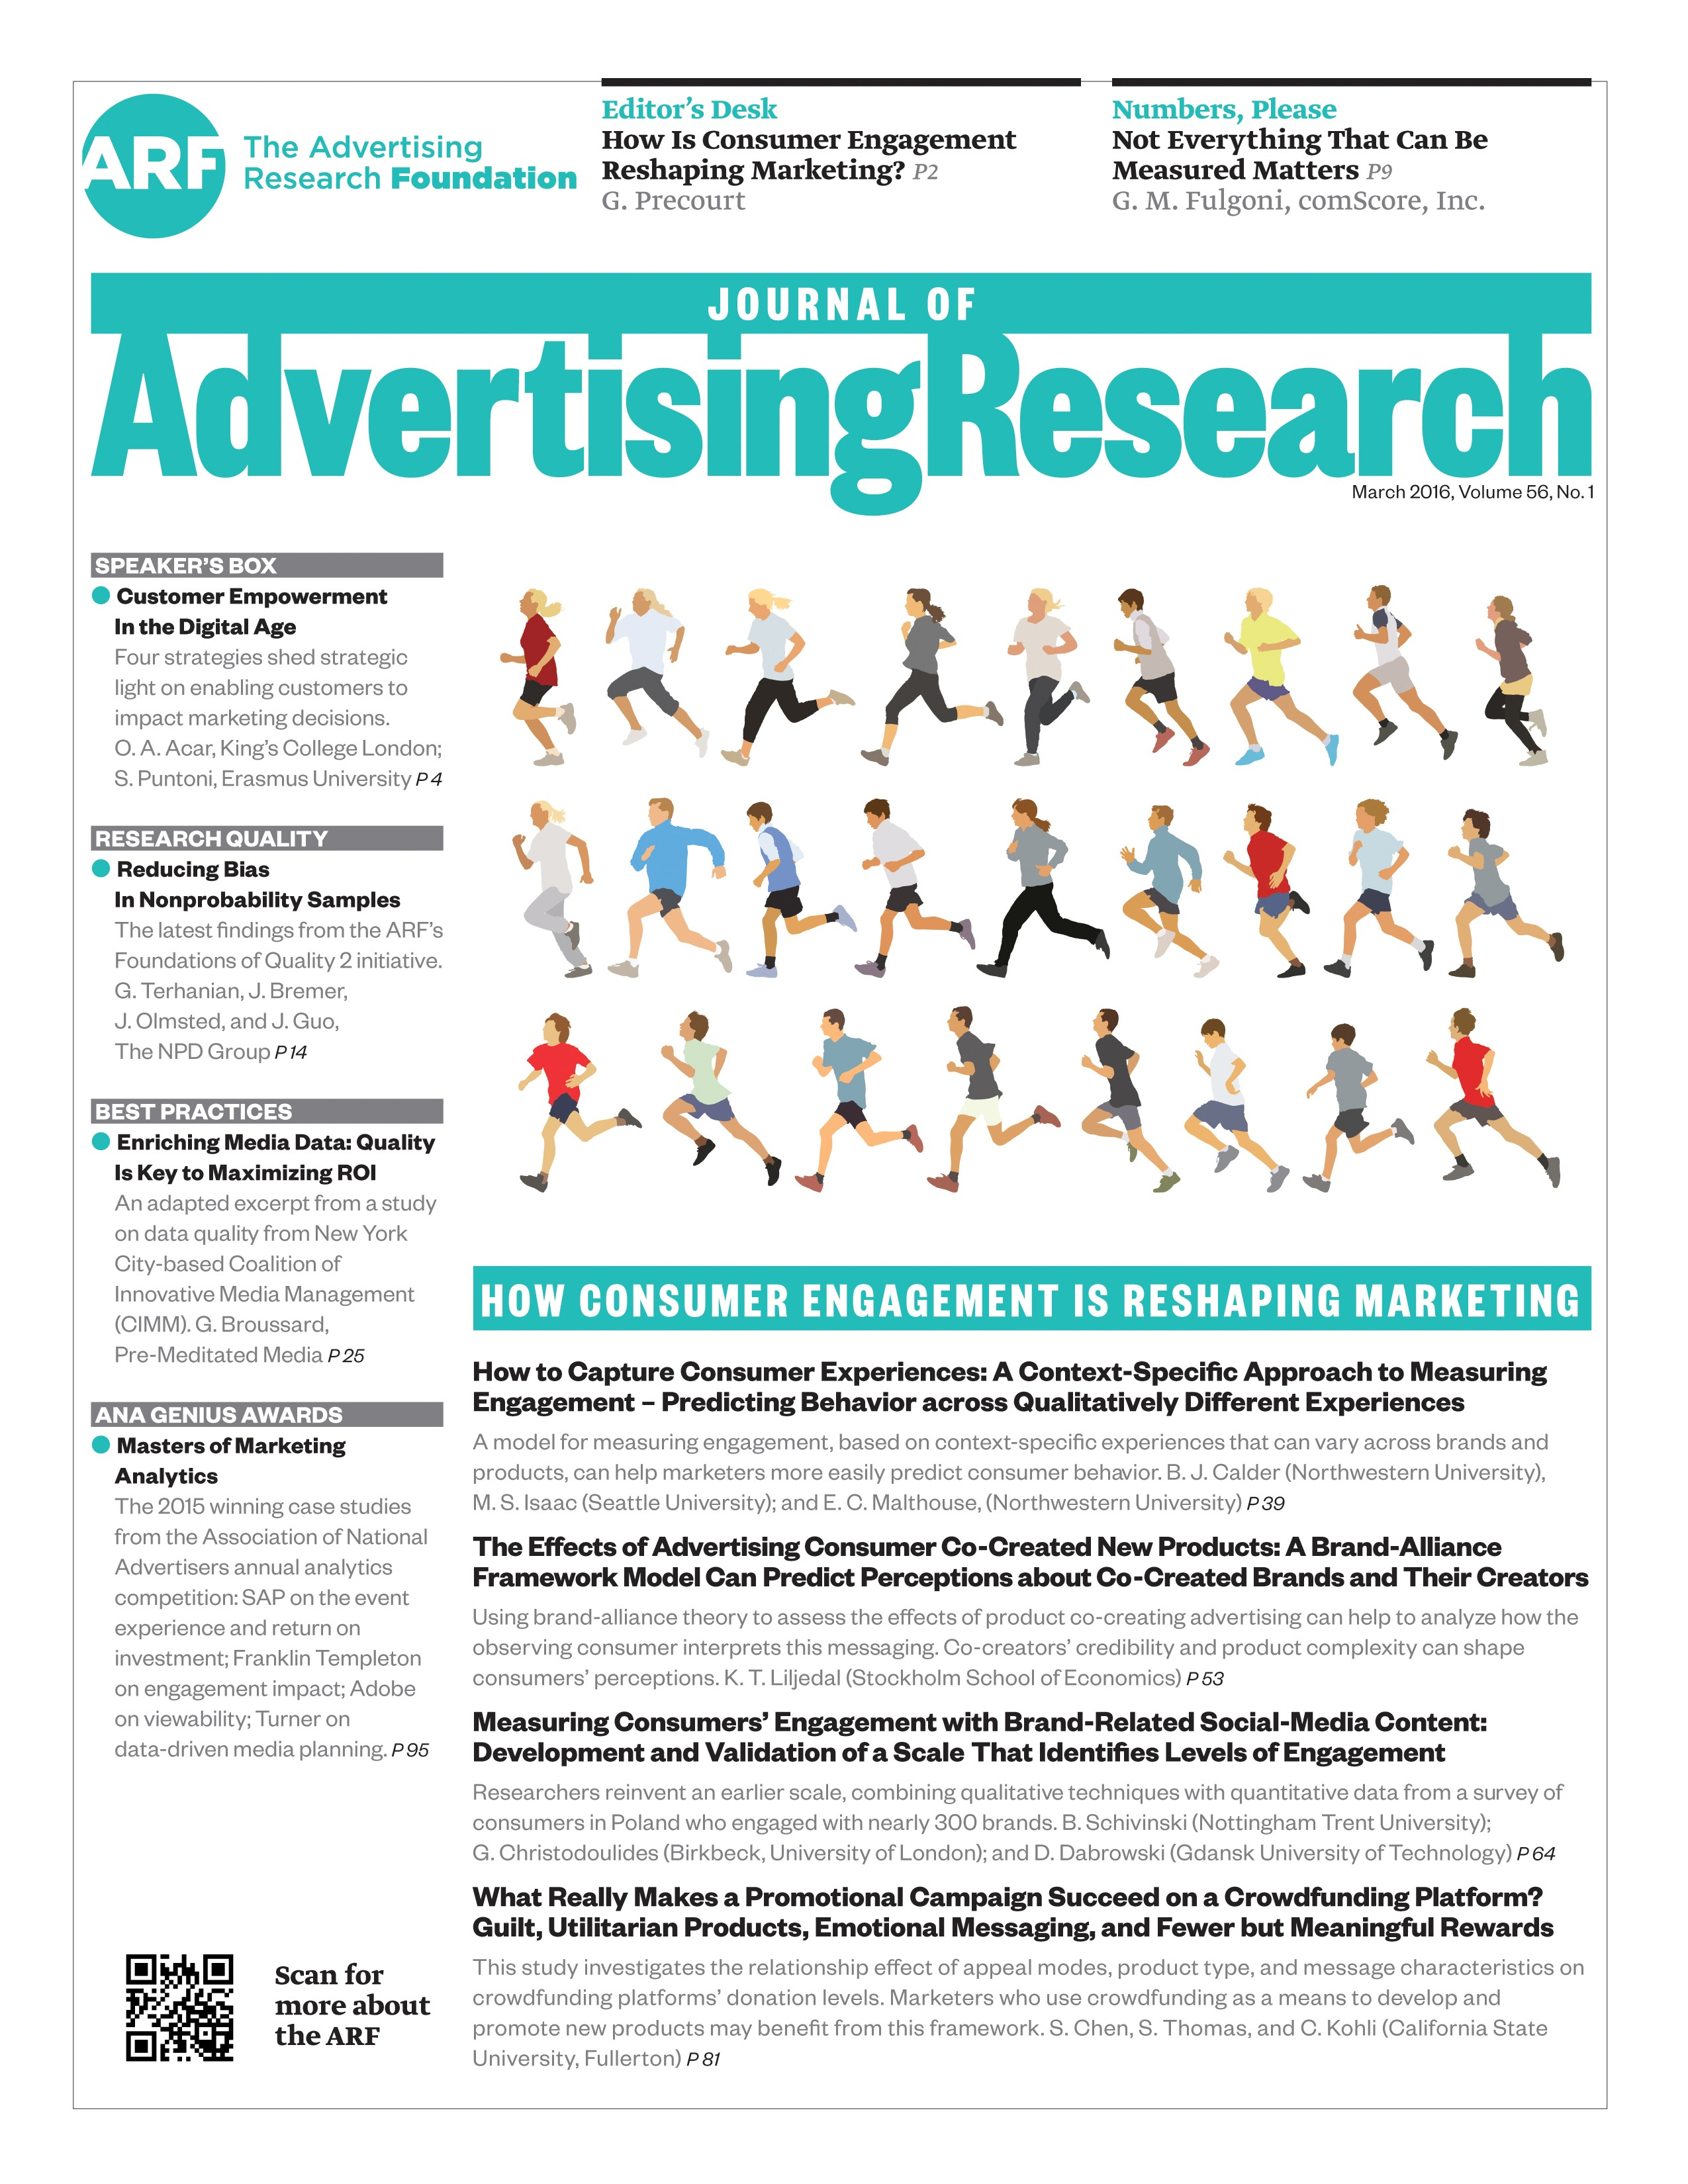 d64492ccc The Effects of Advertising Consumer Co-Created New Products | the Journal  of Advertising Research